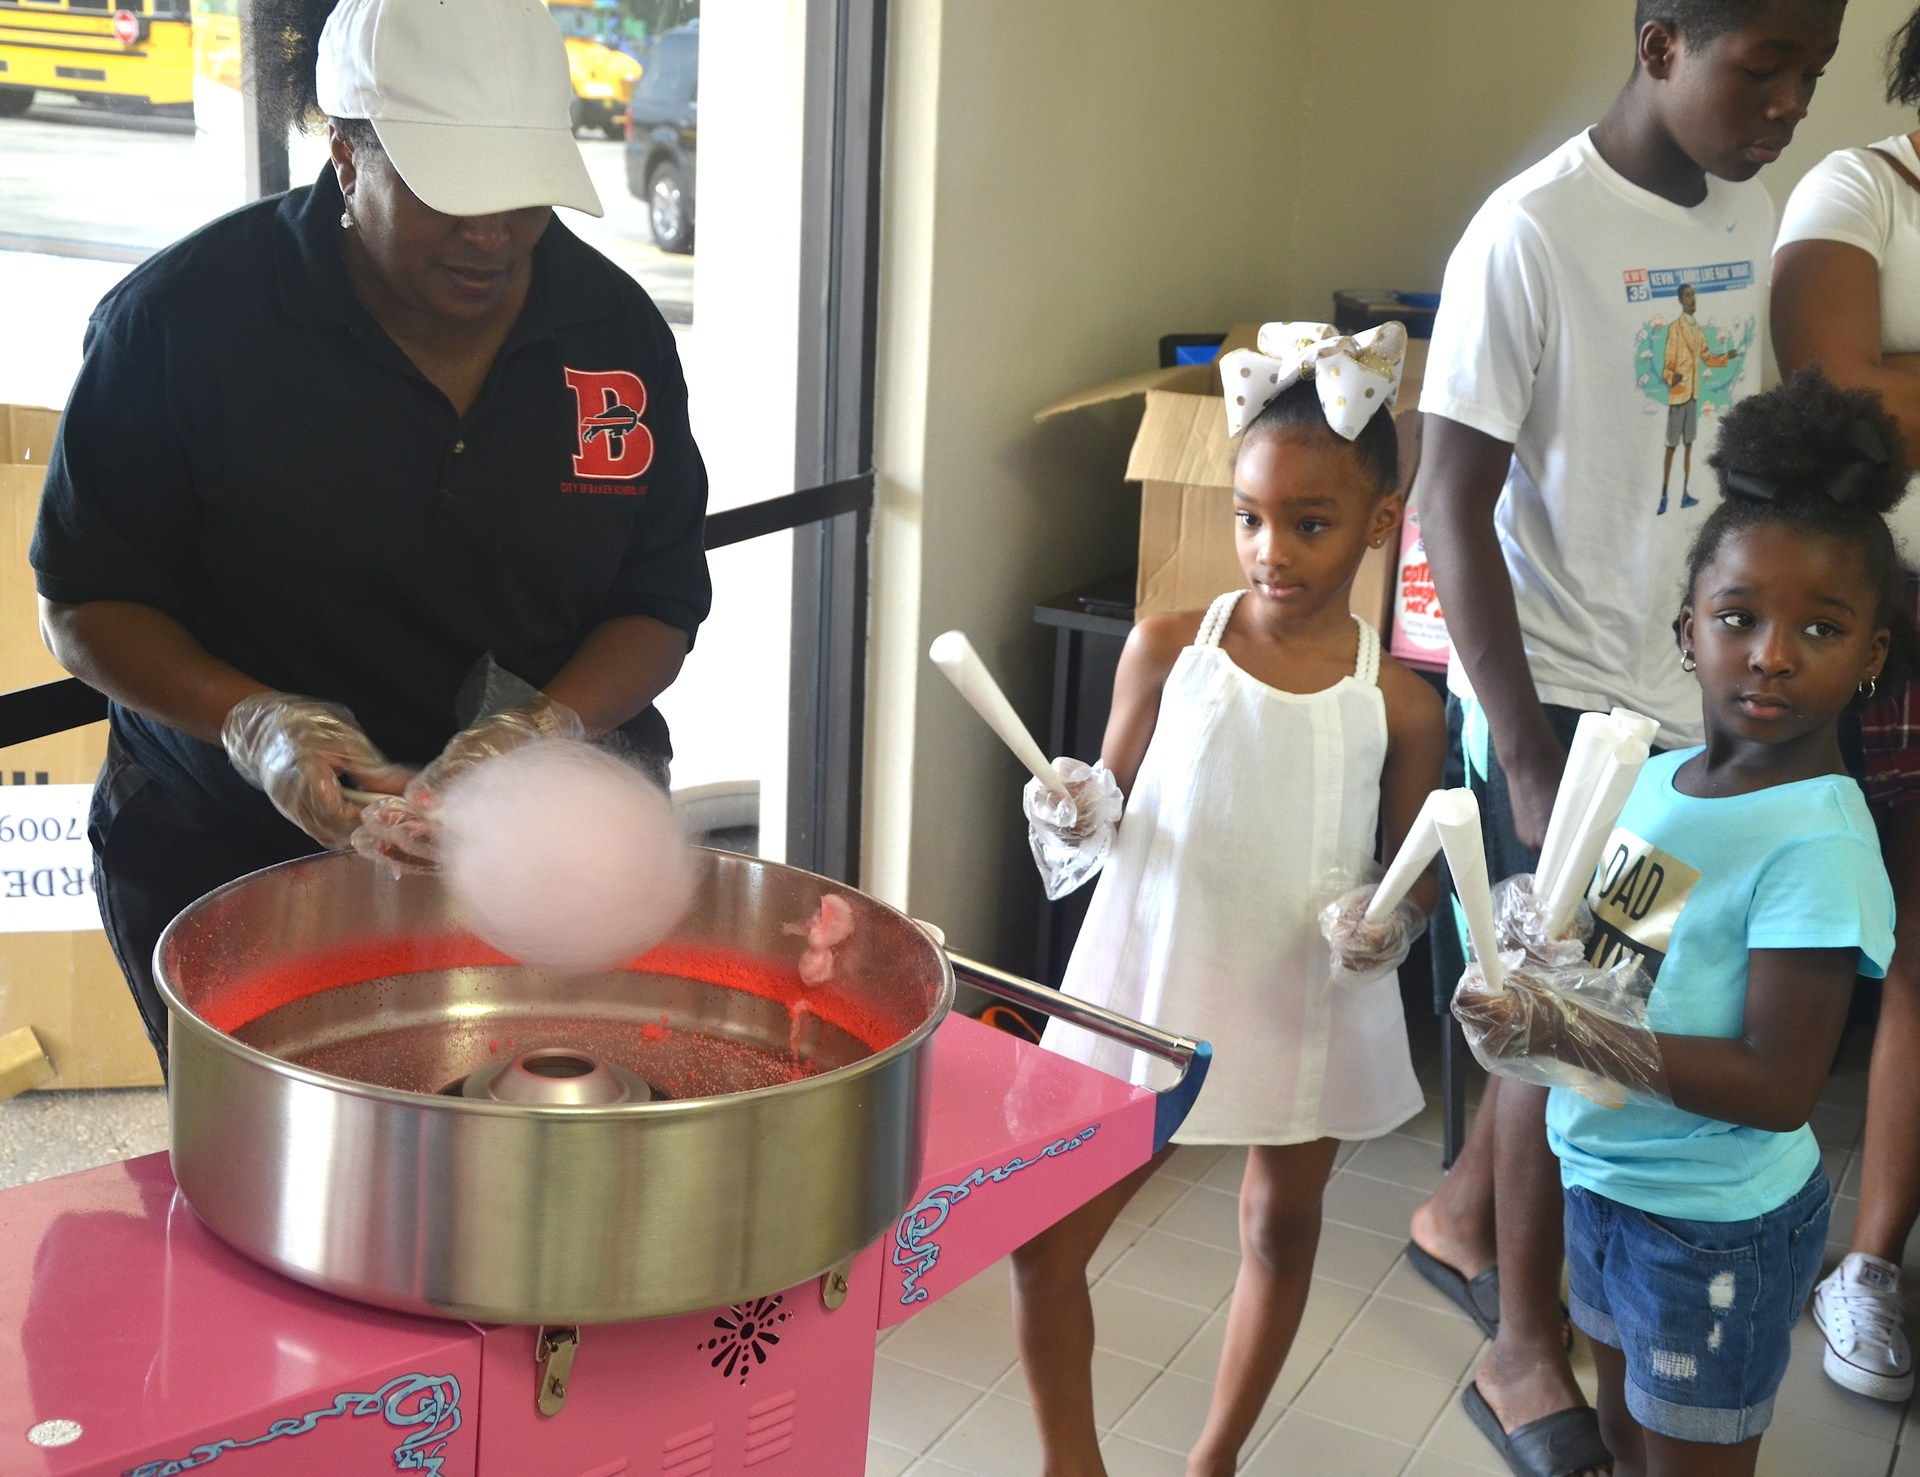 A photo of Miss Golden making and serving cotton candy to children at the 2017 Back To School Expo